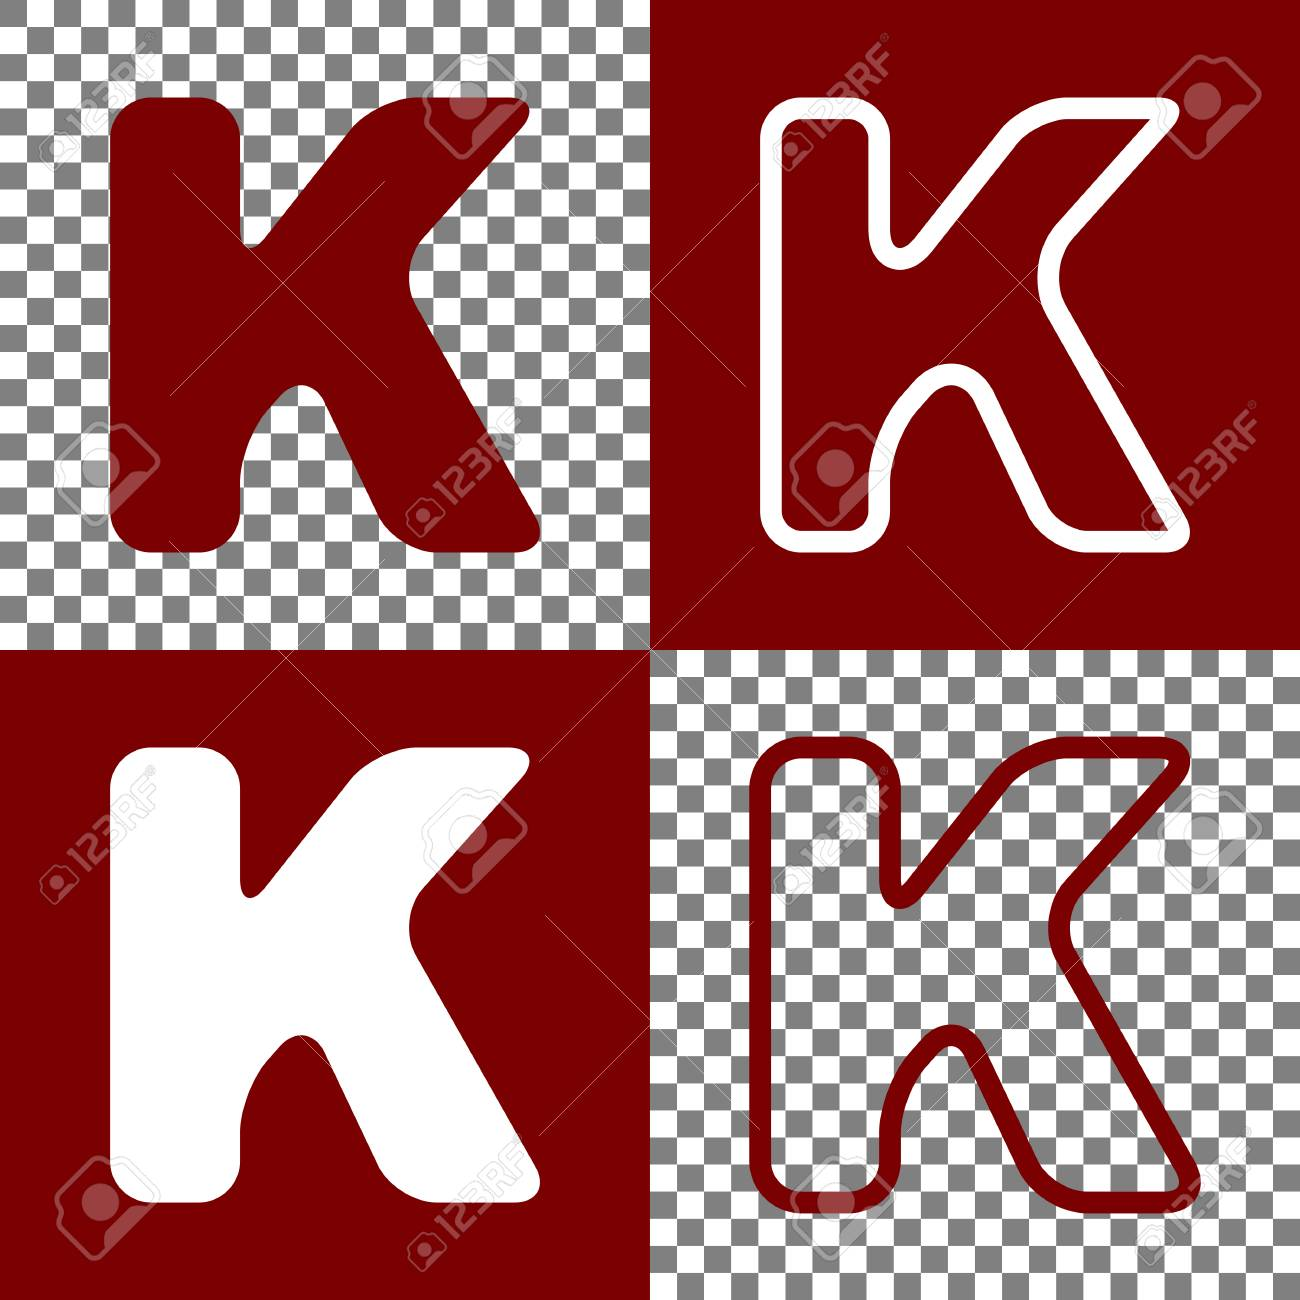 letter k sign design template element vector bordo and white icons and line icons